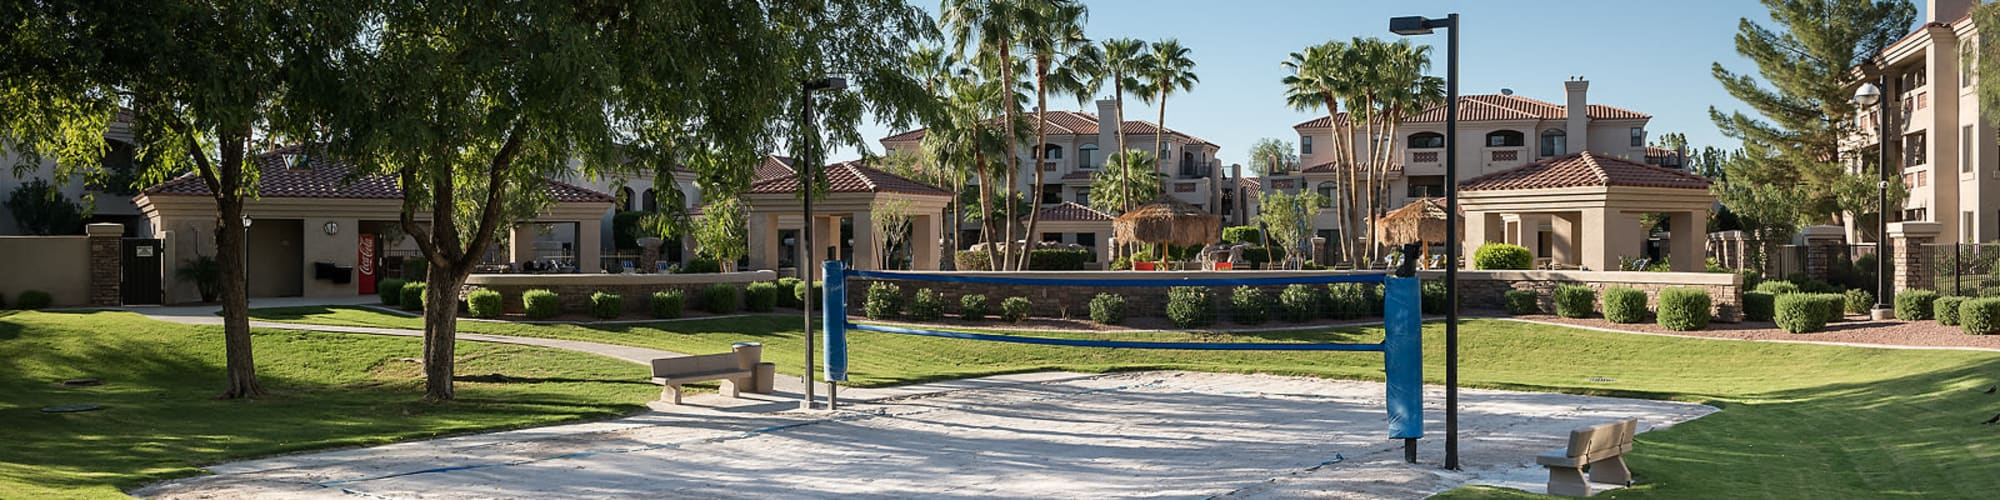 Amenities at San Pedregal in Phoenix, Arizona